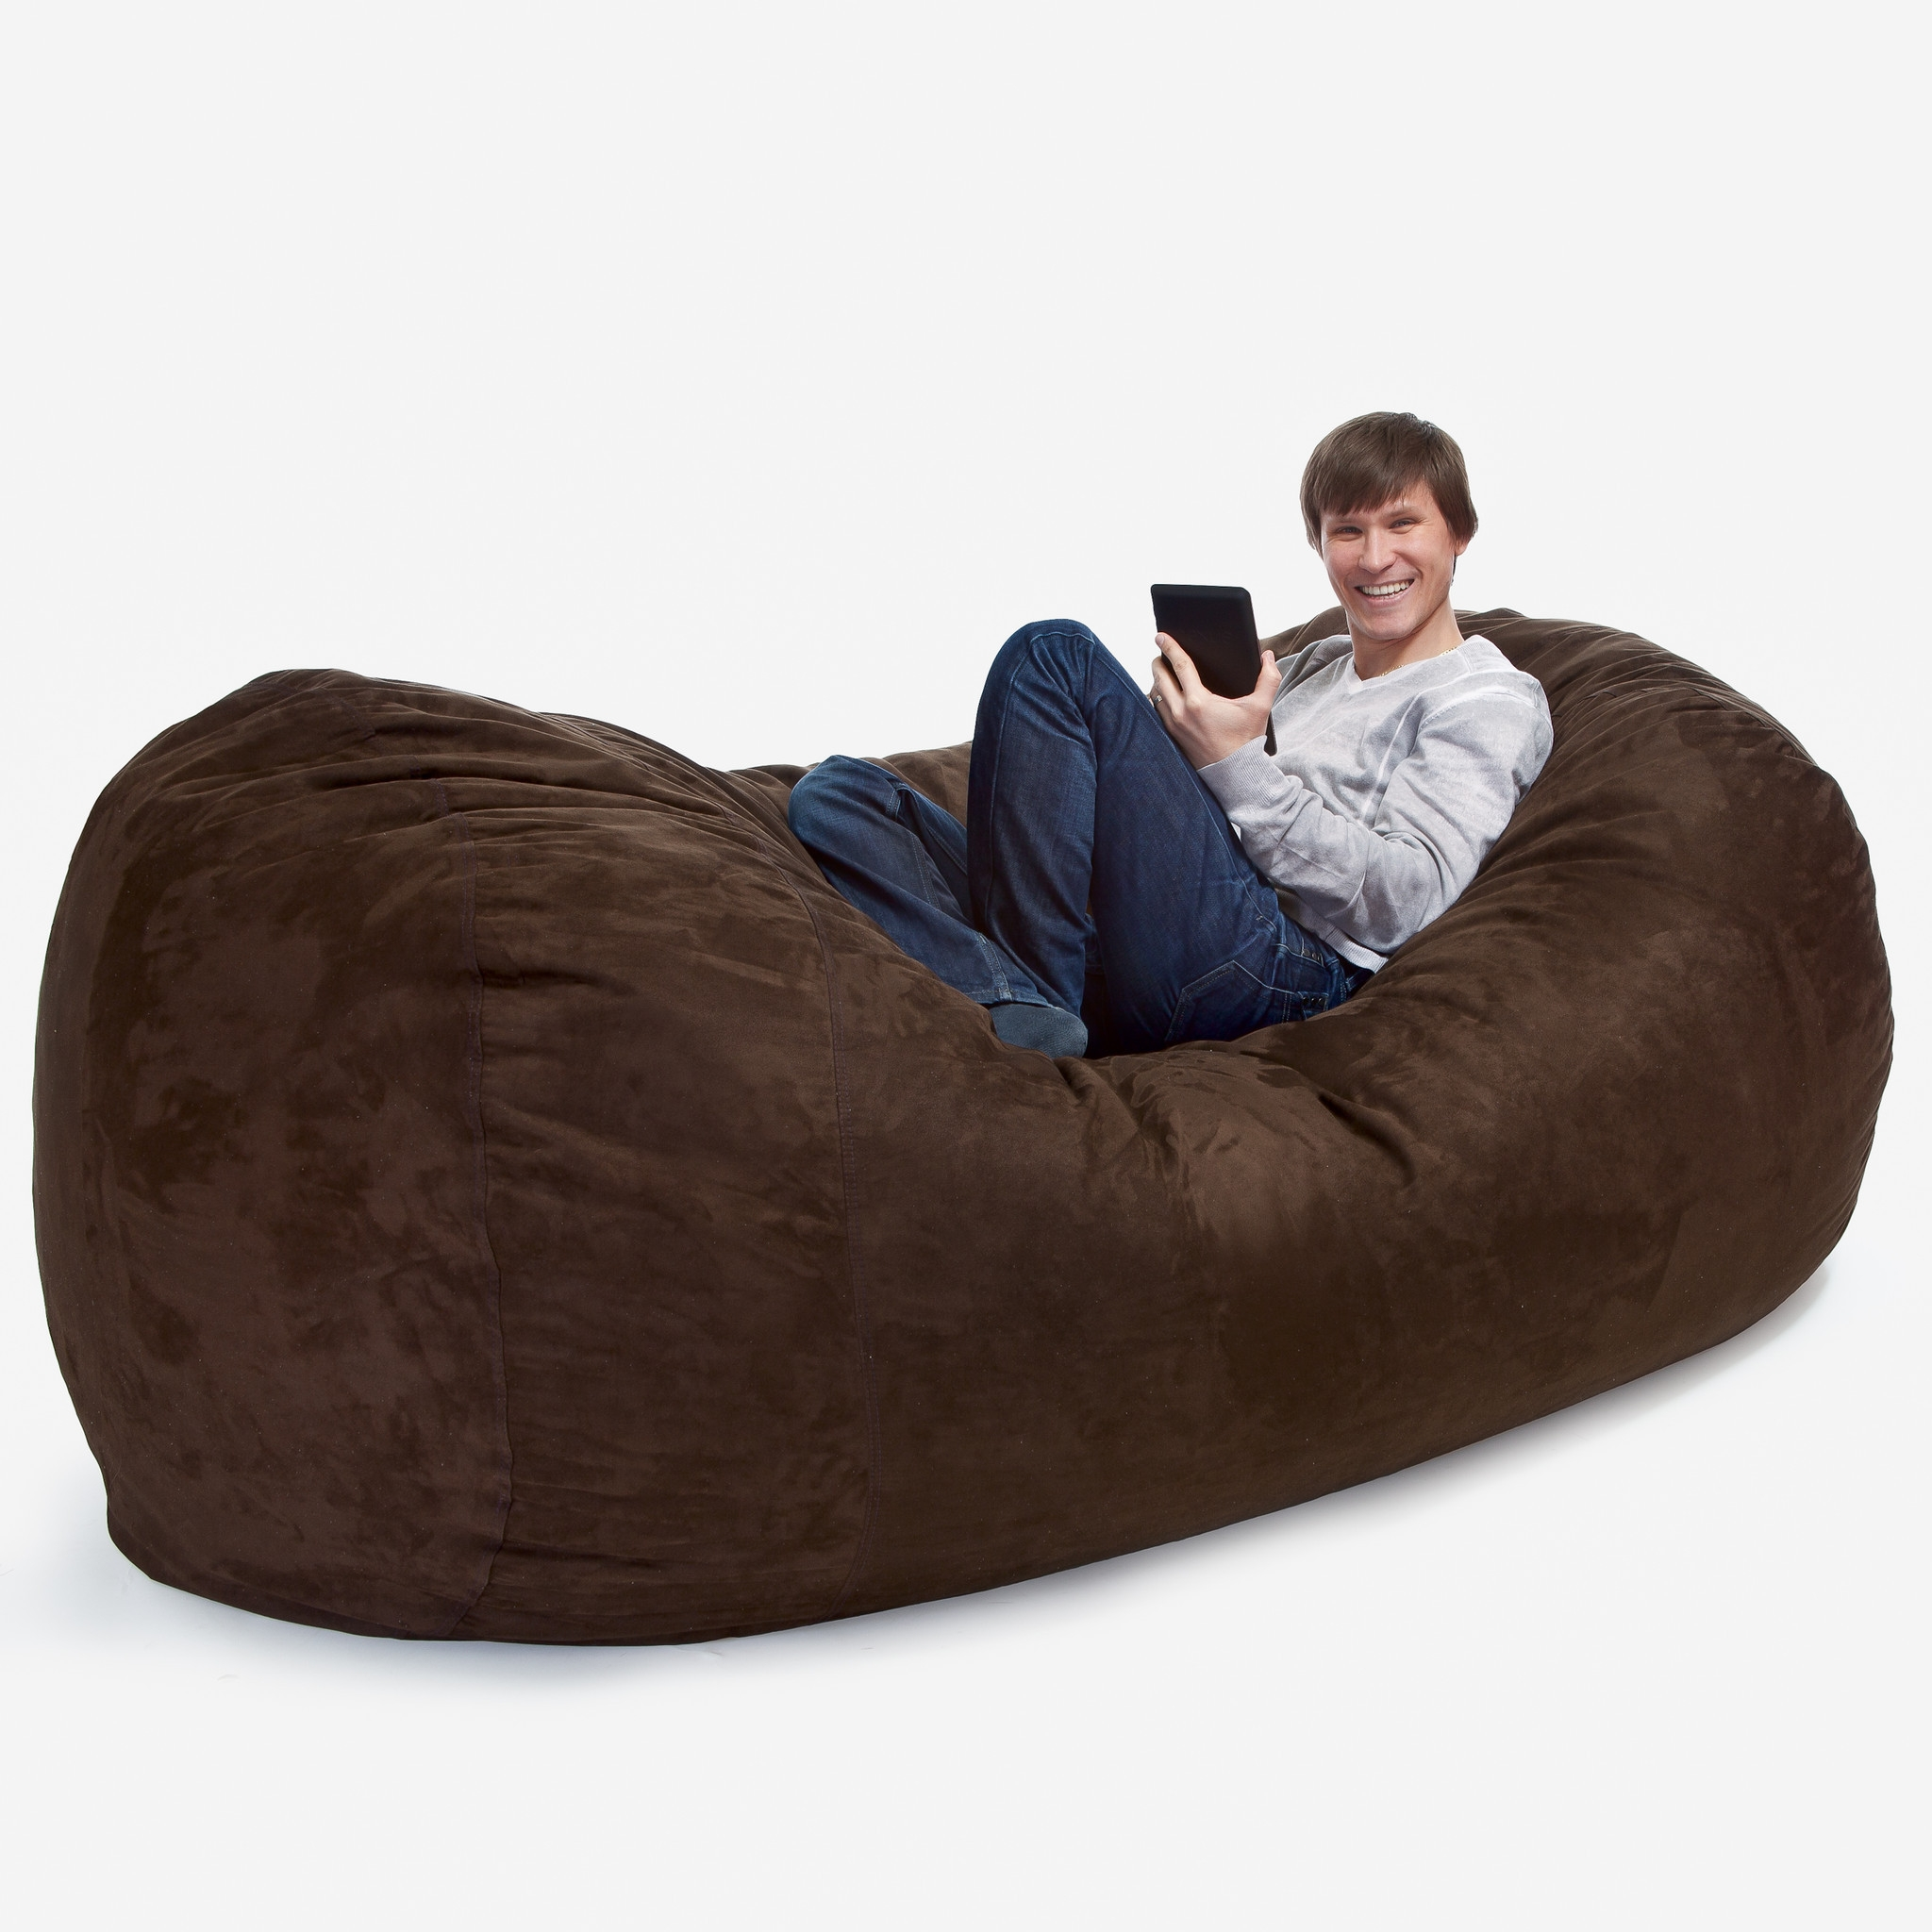 15 s Bean Bag Sofa Chairs